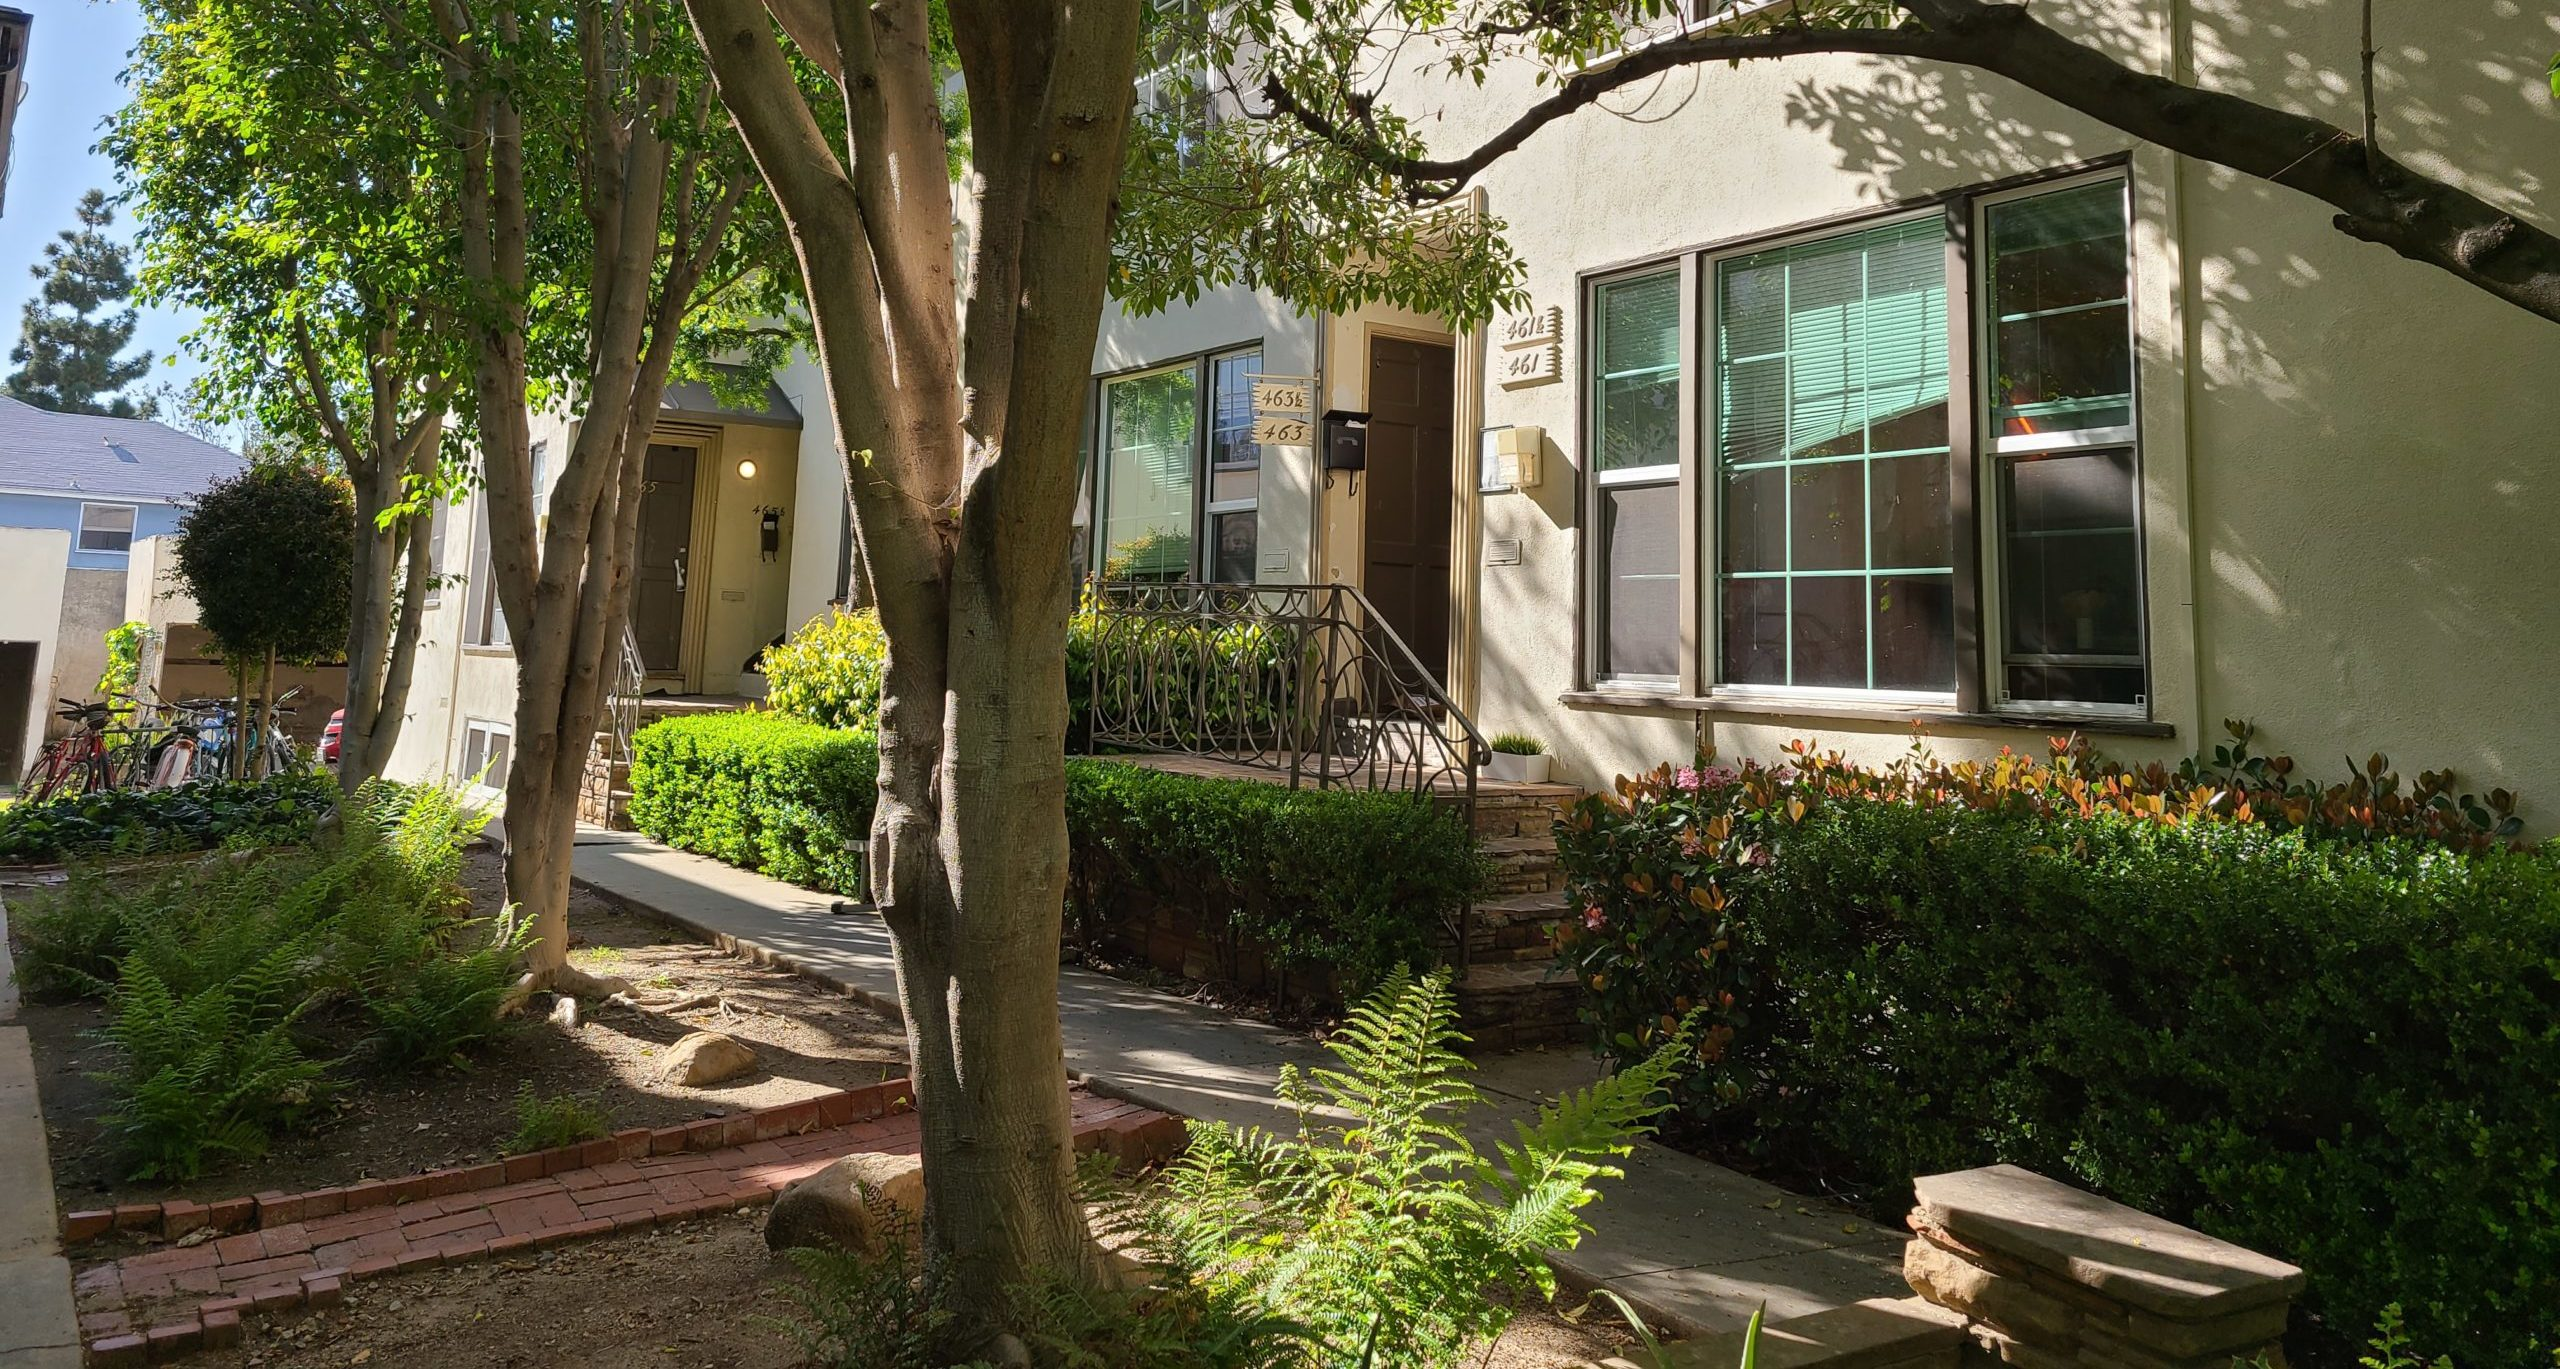 461 Midvale Ave | Los Angeles, CA 90024